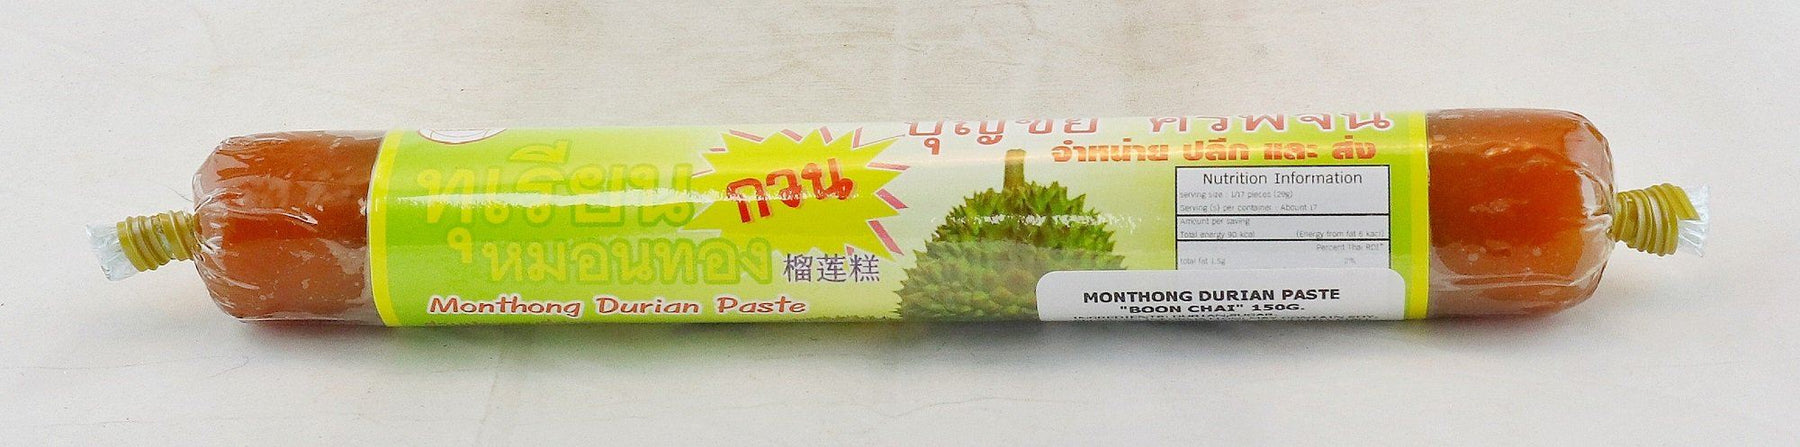 Boonchai Monthong Durian Paste 150g - Yin Yam - Asian Grocery